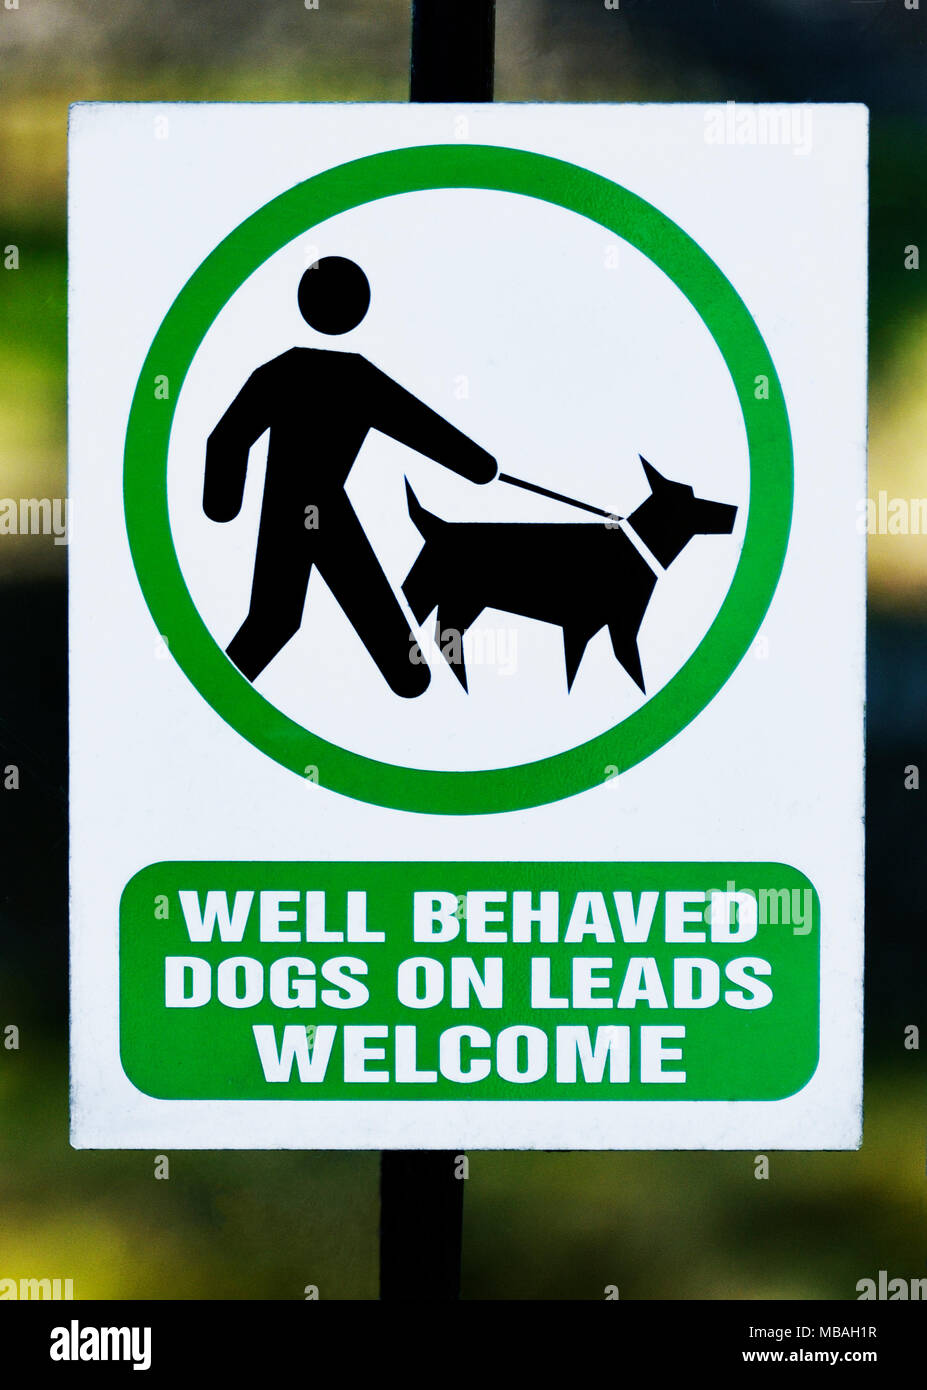 notice-well-behaved-dogs-on-leads-welcome-k-village-kendal-cumbria-england-united-kingdom-europe-MBAH1R.jpg